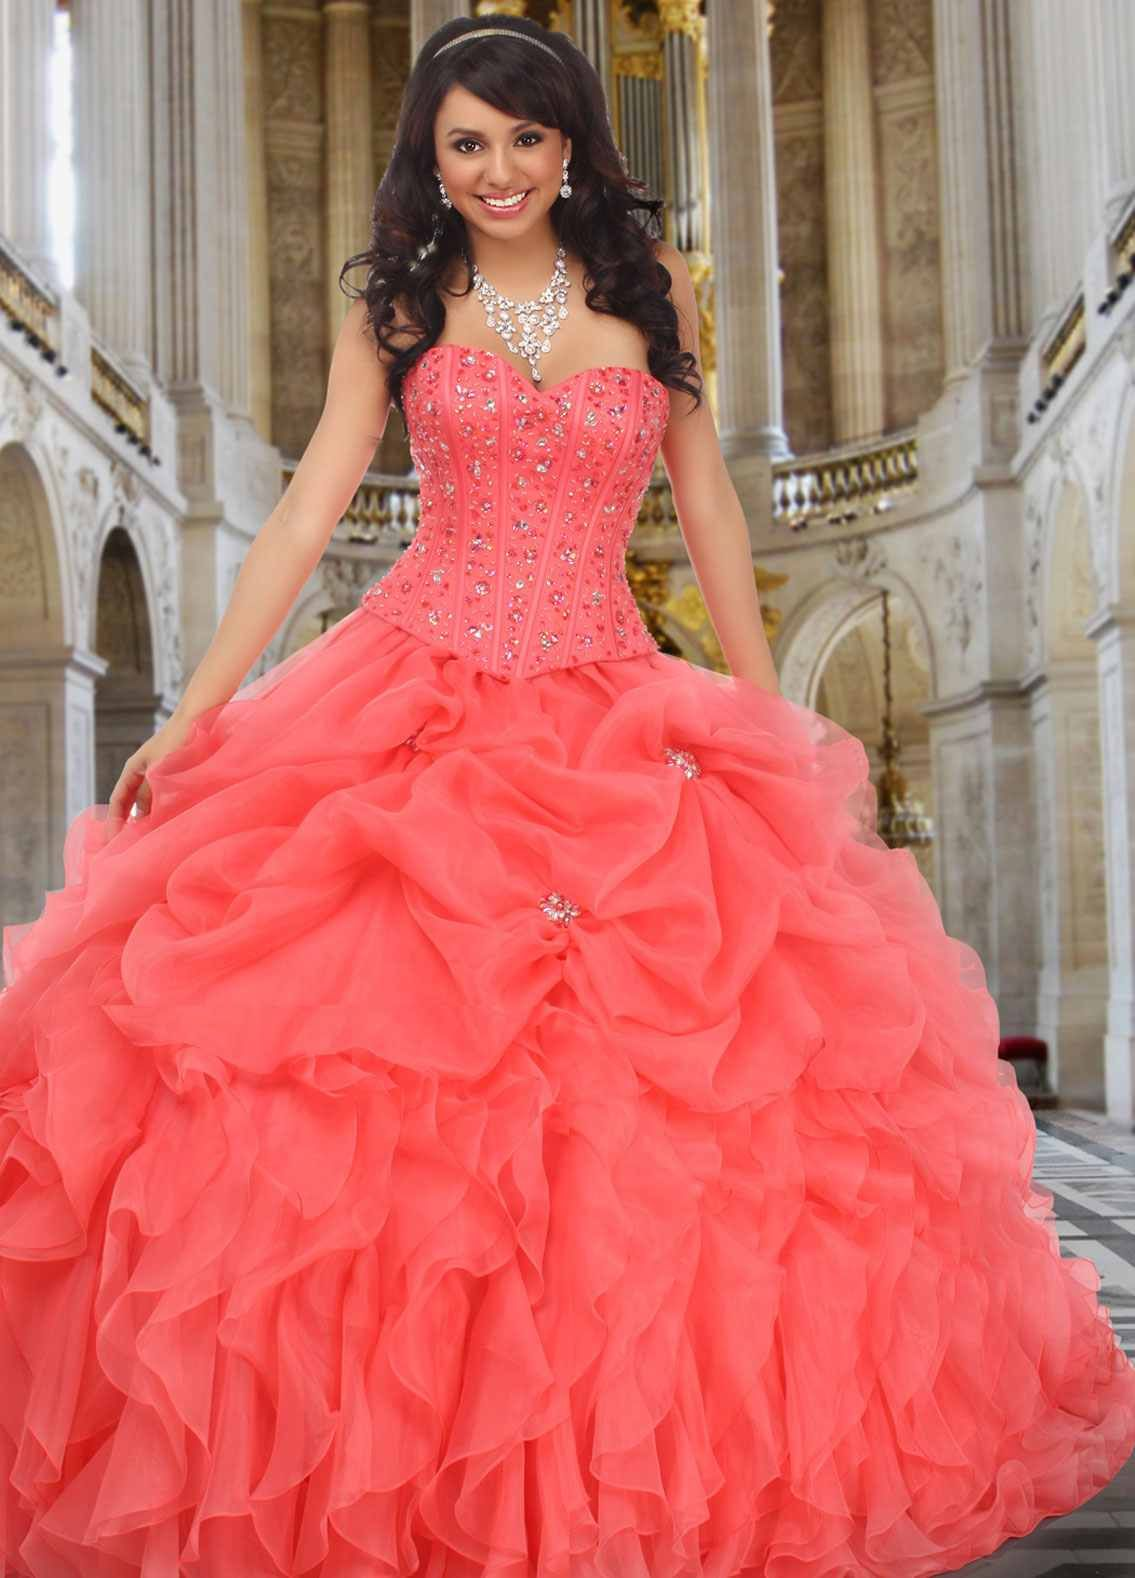 Coral davincy quince dress at cleous white moments gorgeous